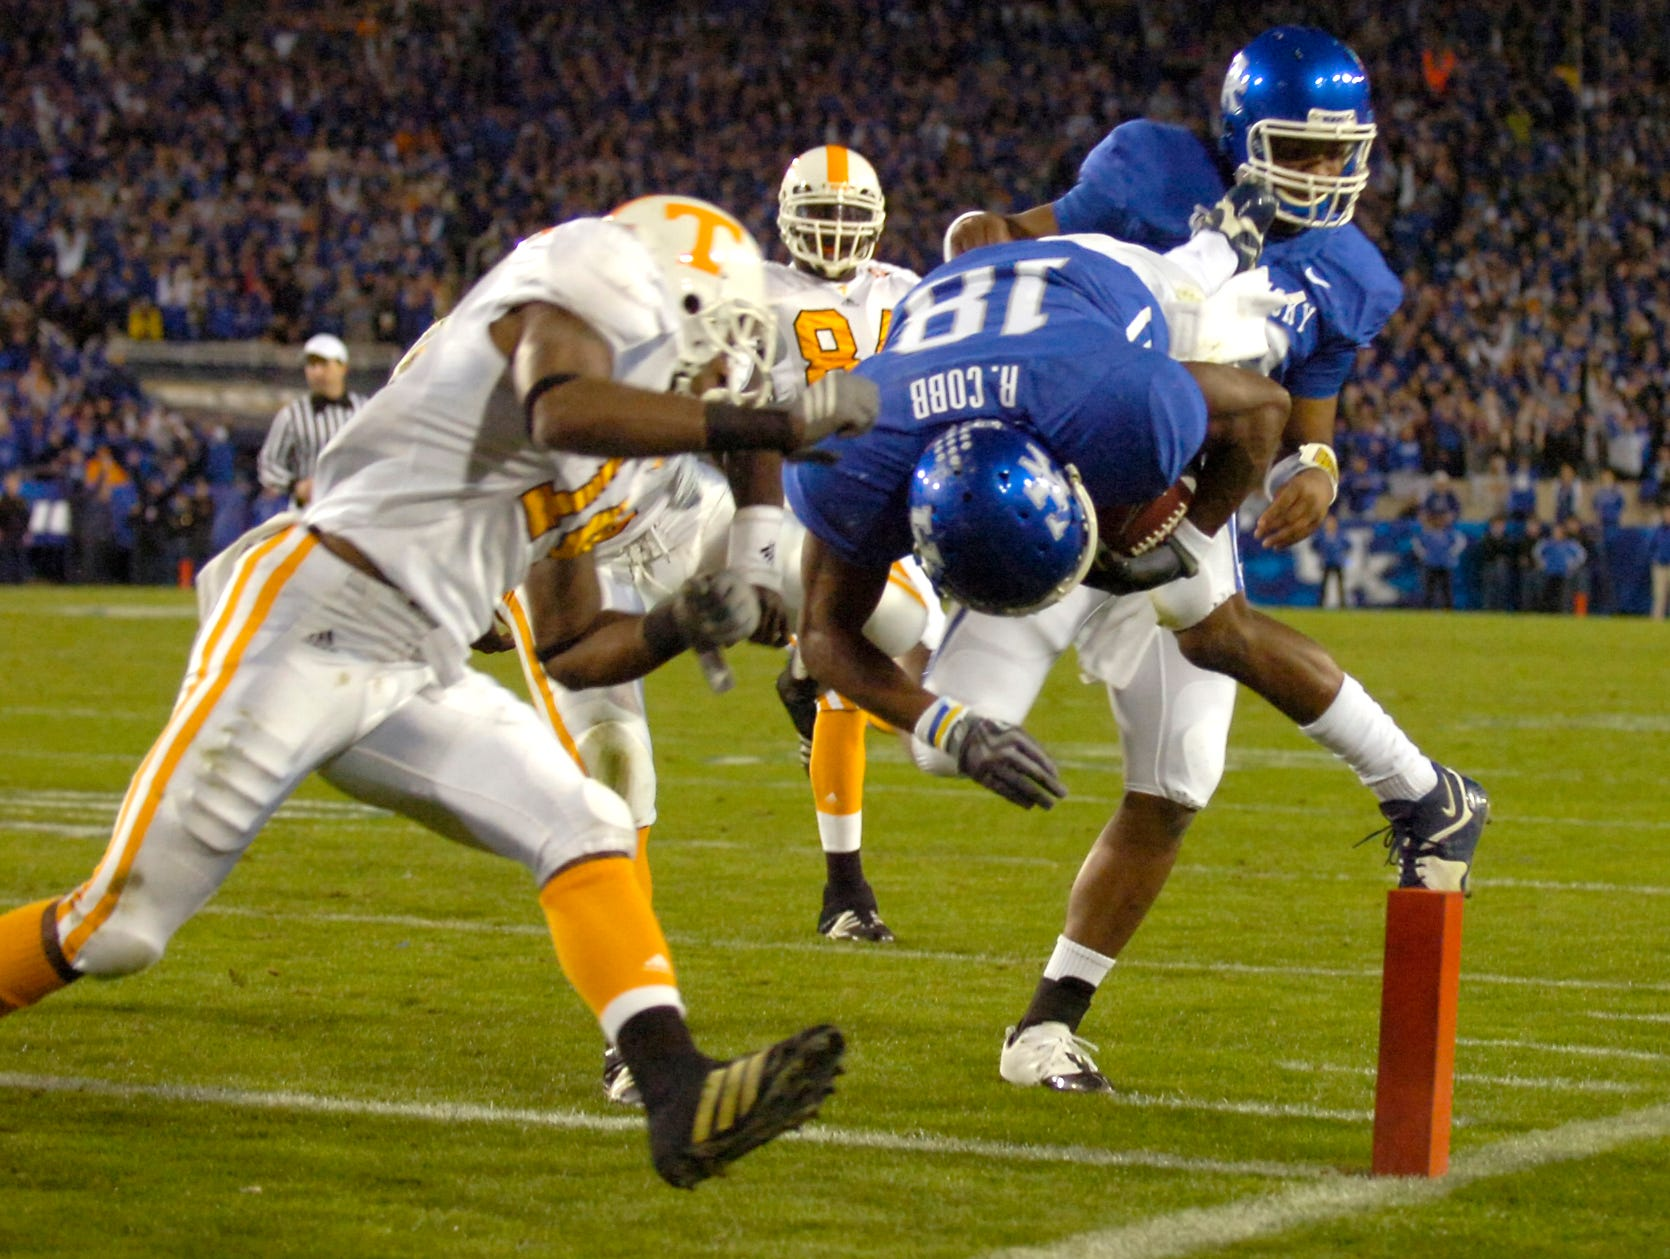 Tennessee cornerback Eric Berry (14) jumps to hit Kentucky wide receiver Randall Cobb as he dives for a touchdown on Saturday, Nov. 28, 2009 at Commonwealth Stadium in Lexington, KY.